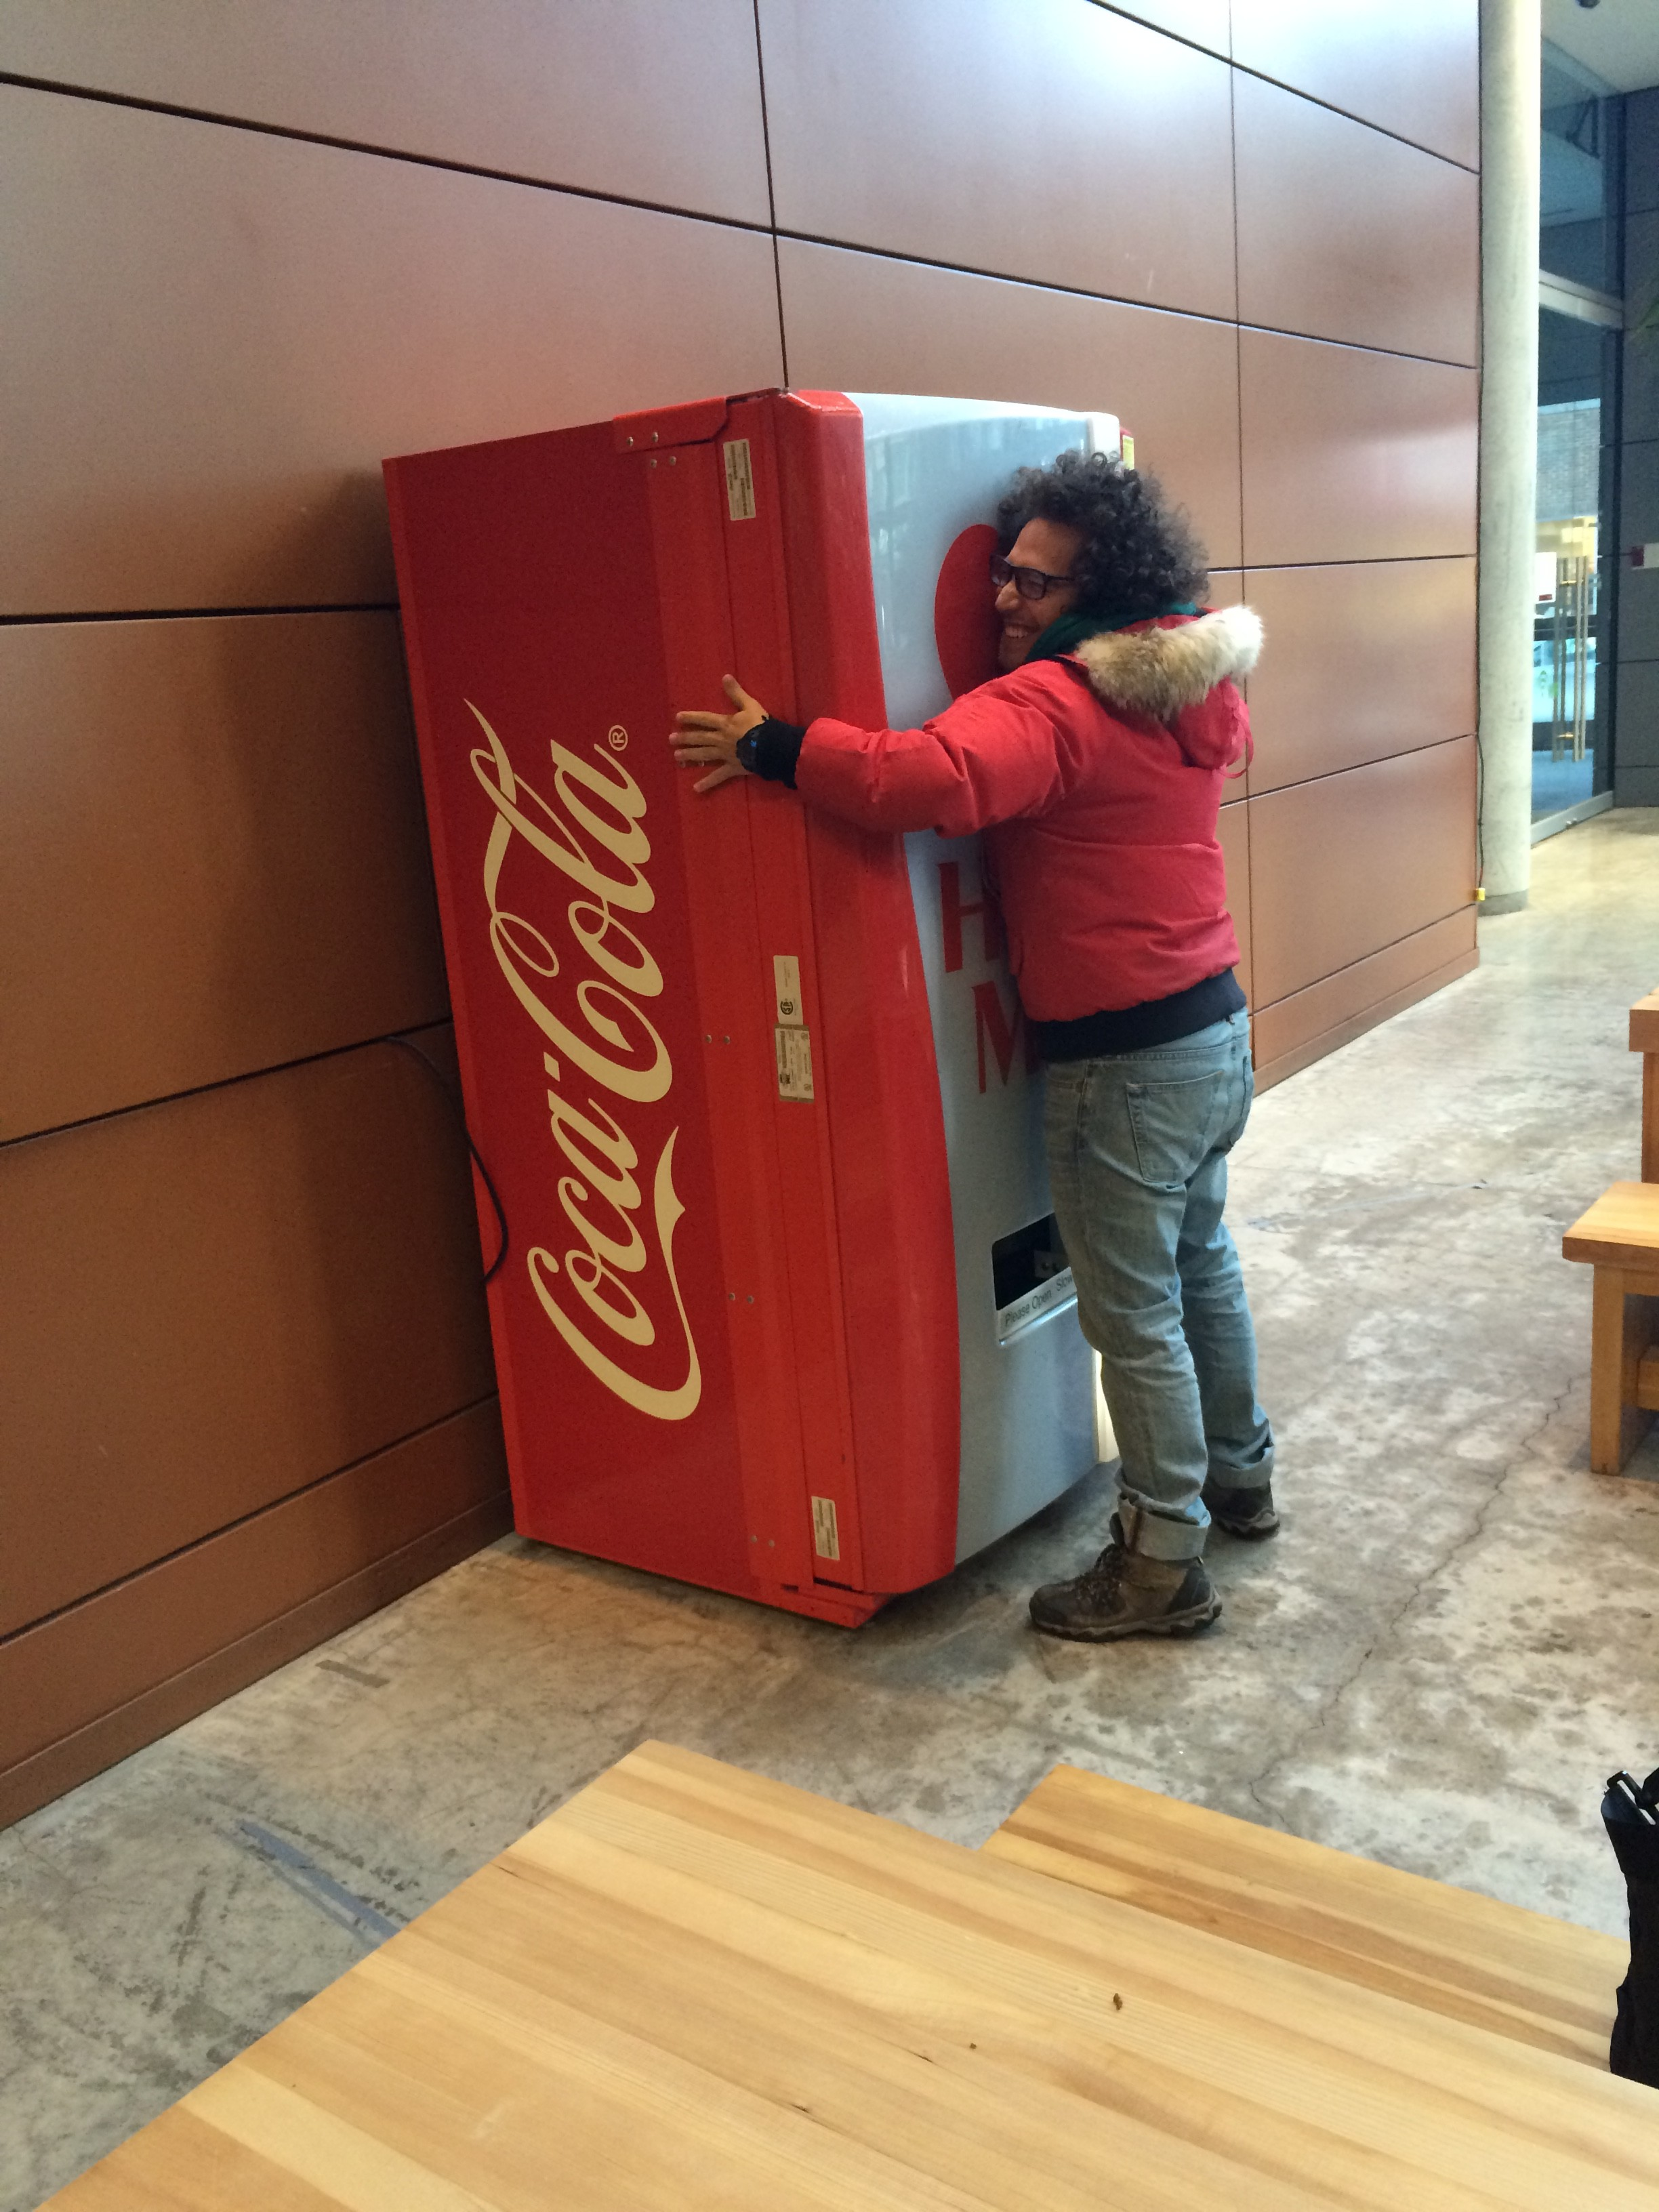 Nikolas Romero partakes in Coca-Cola's Wednesday marketing campaign because he likes how it encourages hugs. Pictures by Michelle Gamage.